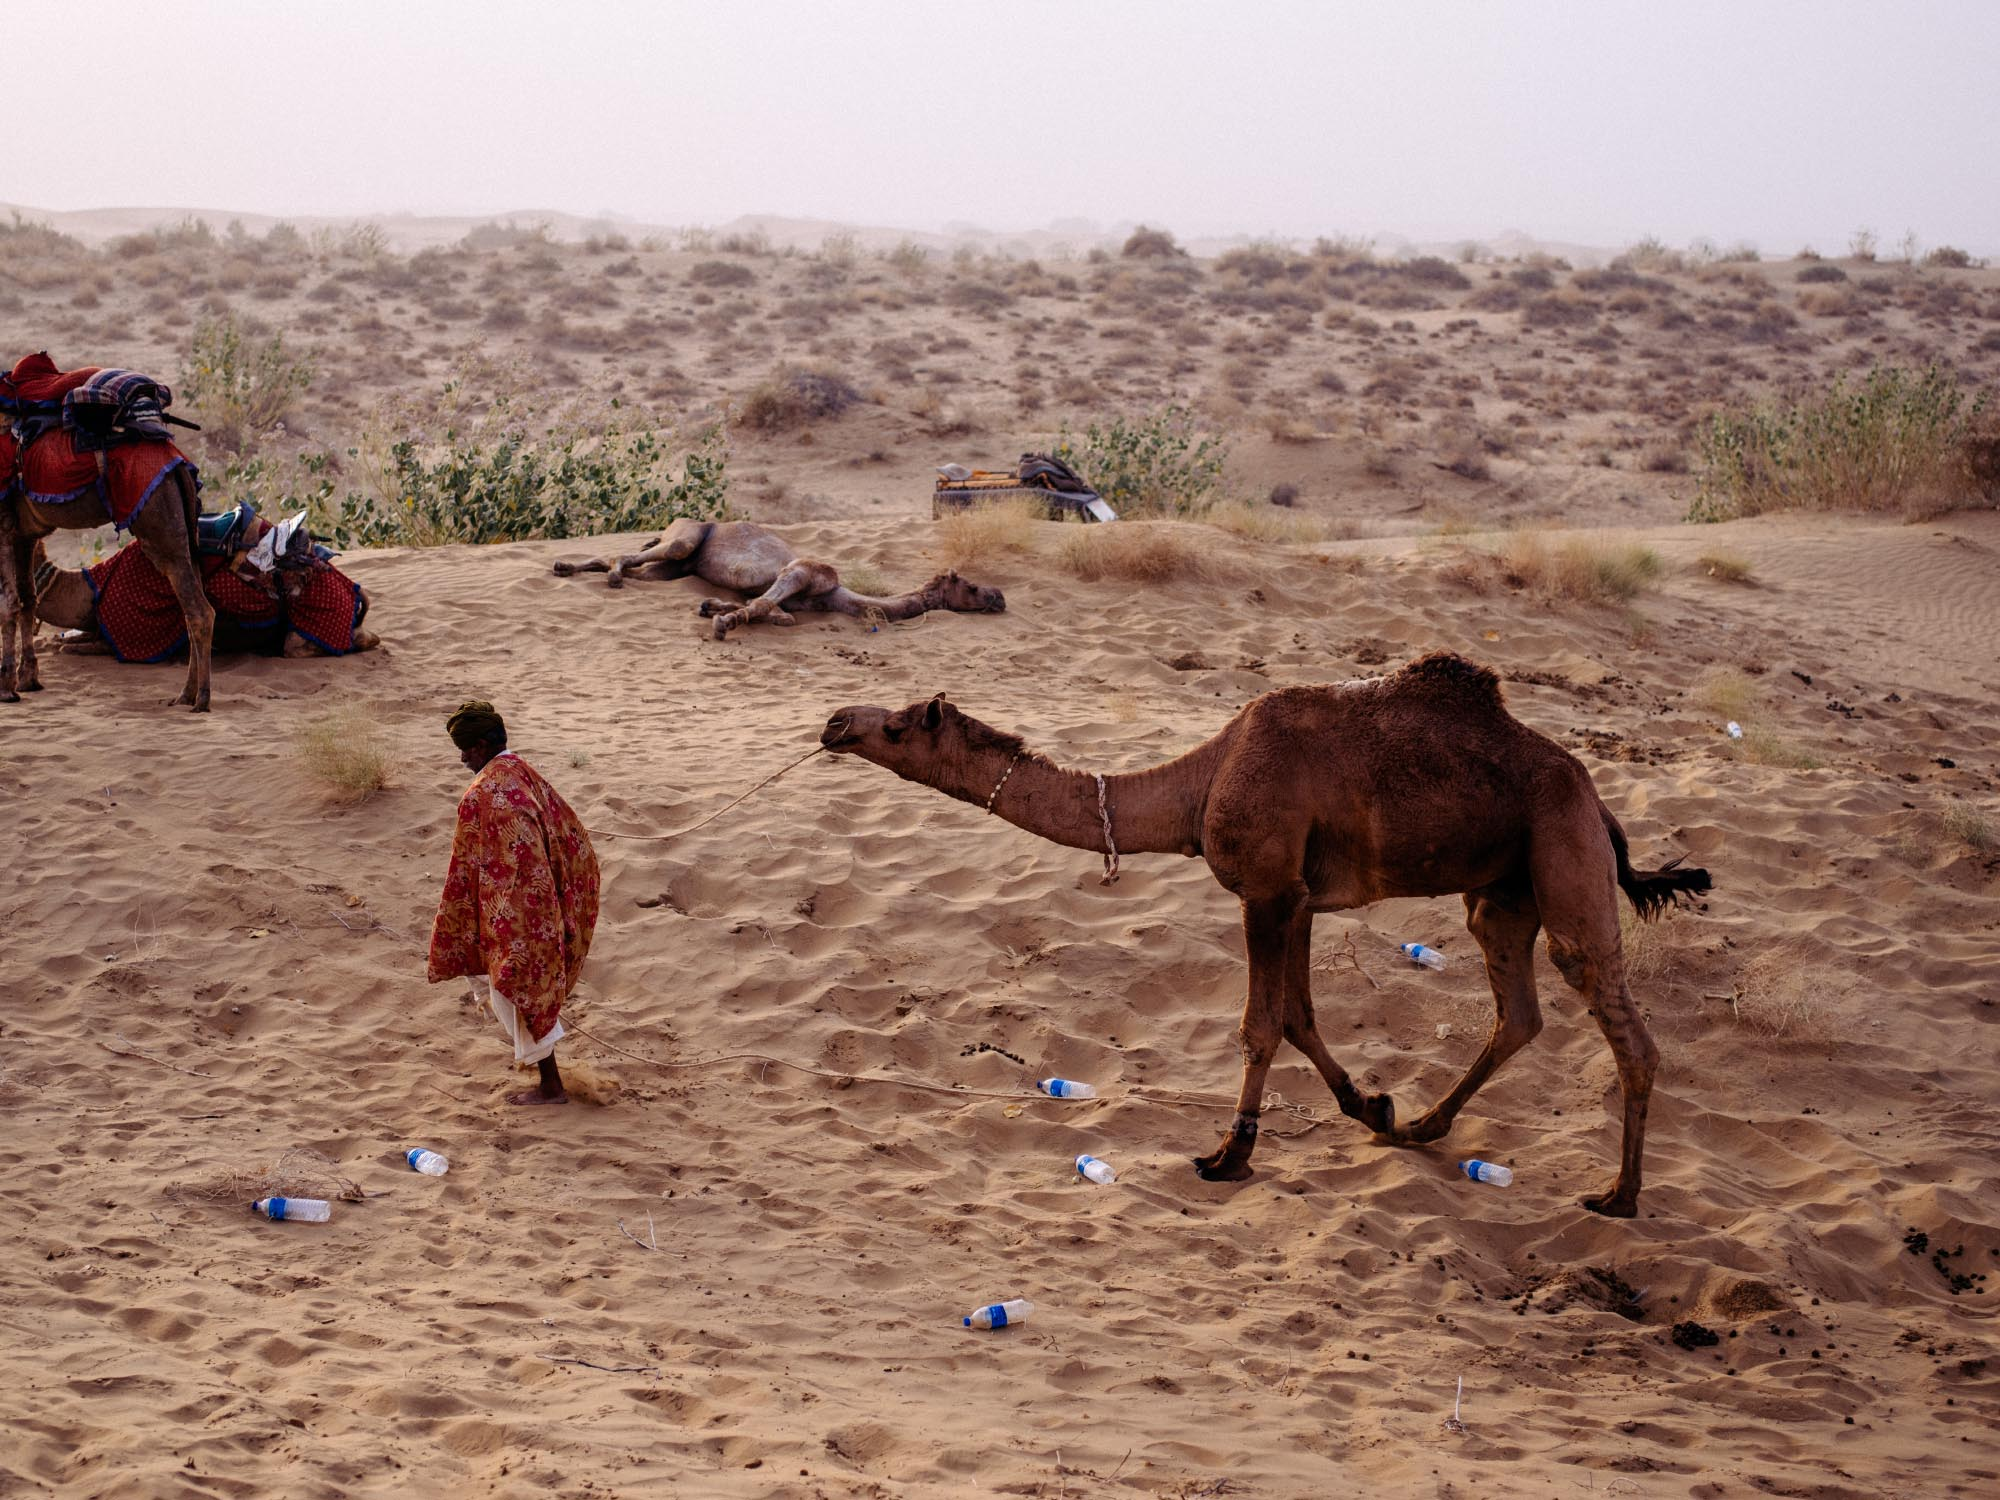 At a camel safari, all the empty water bottles got blown away and we thought the guides would leave them behind so we started to collect them. Fortunately, they also picked every last bit of trash. Great job, guys!